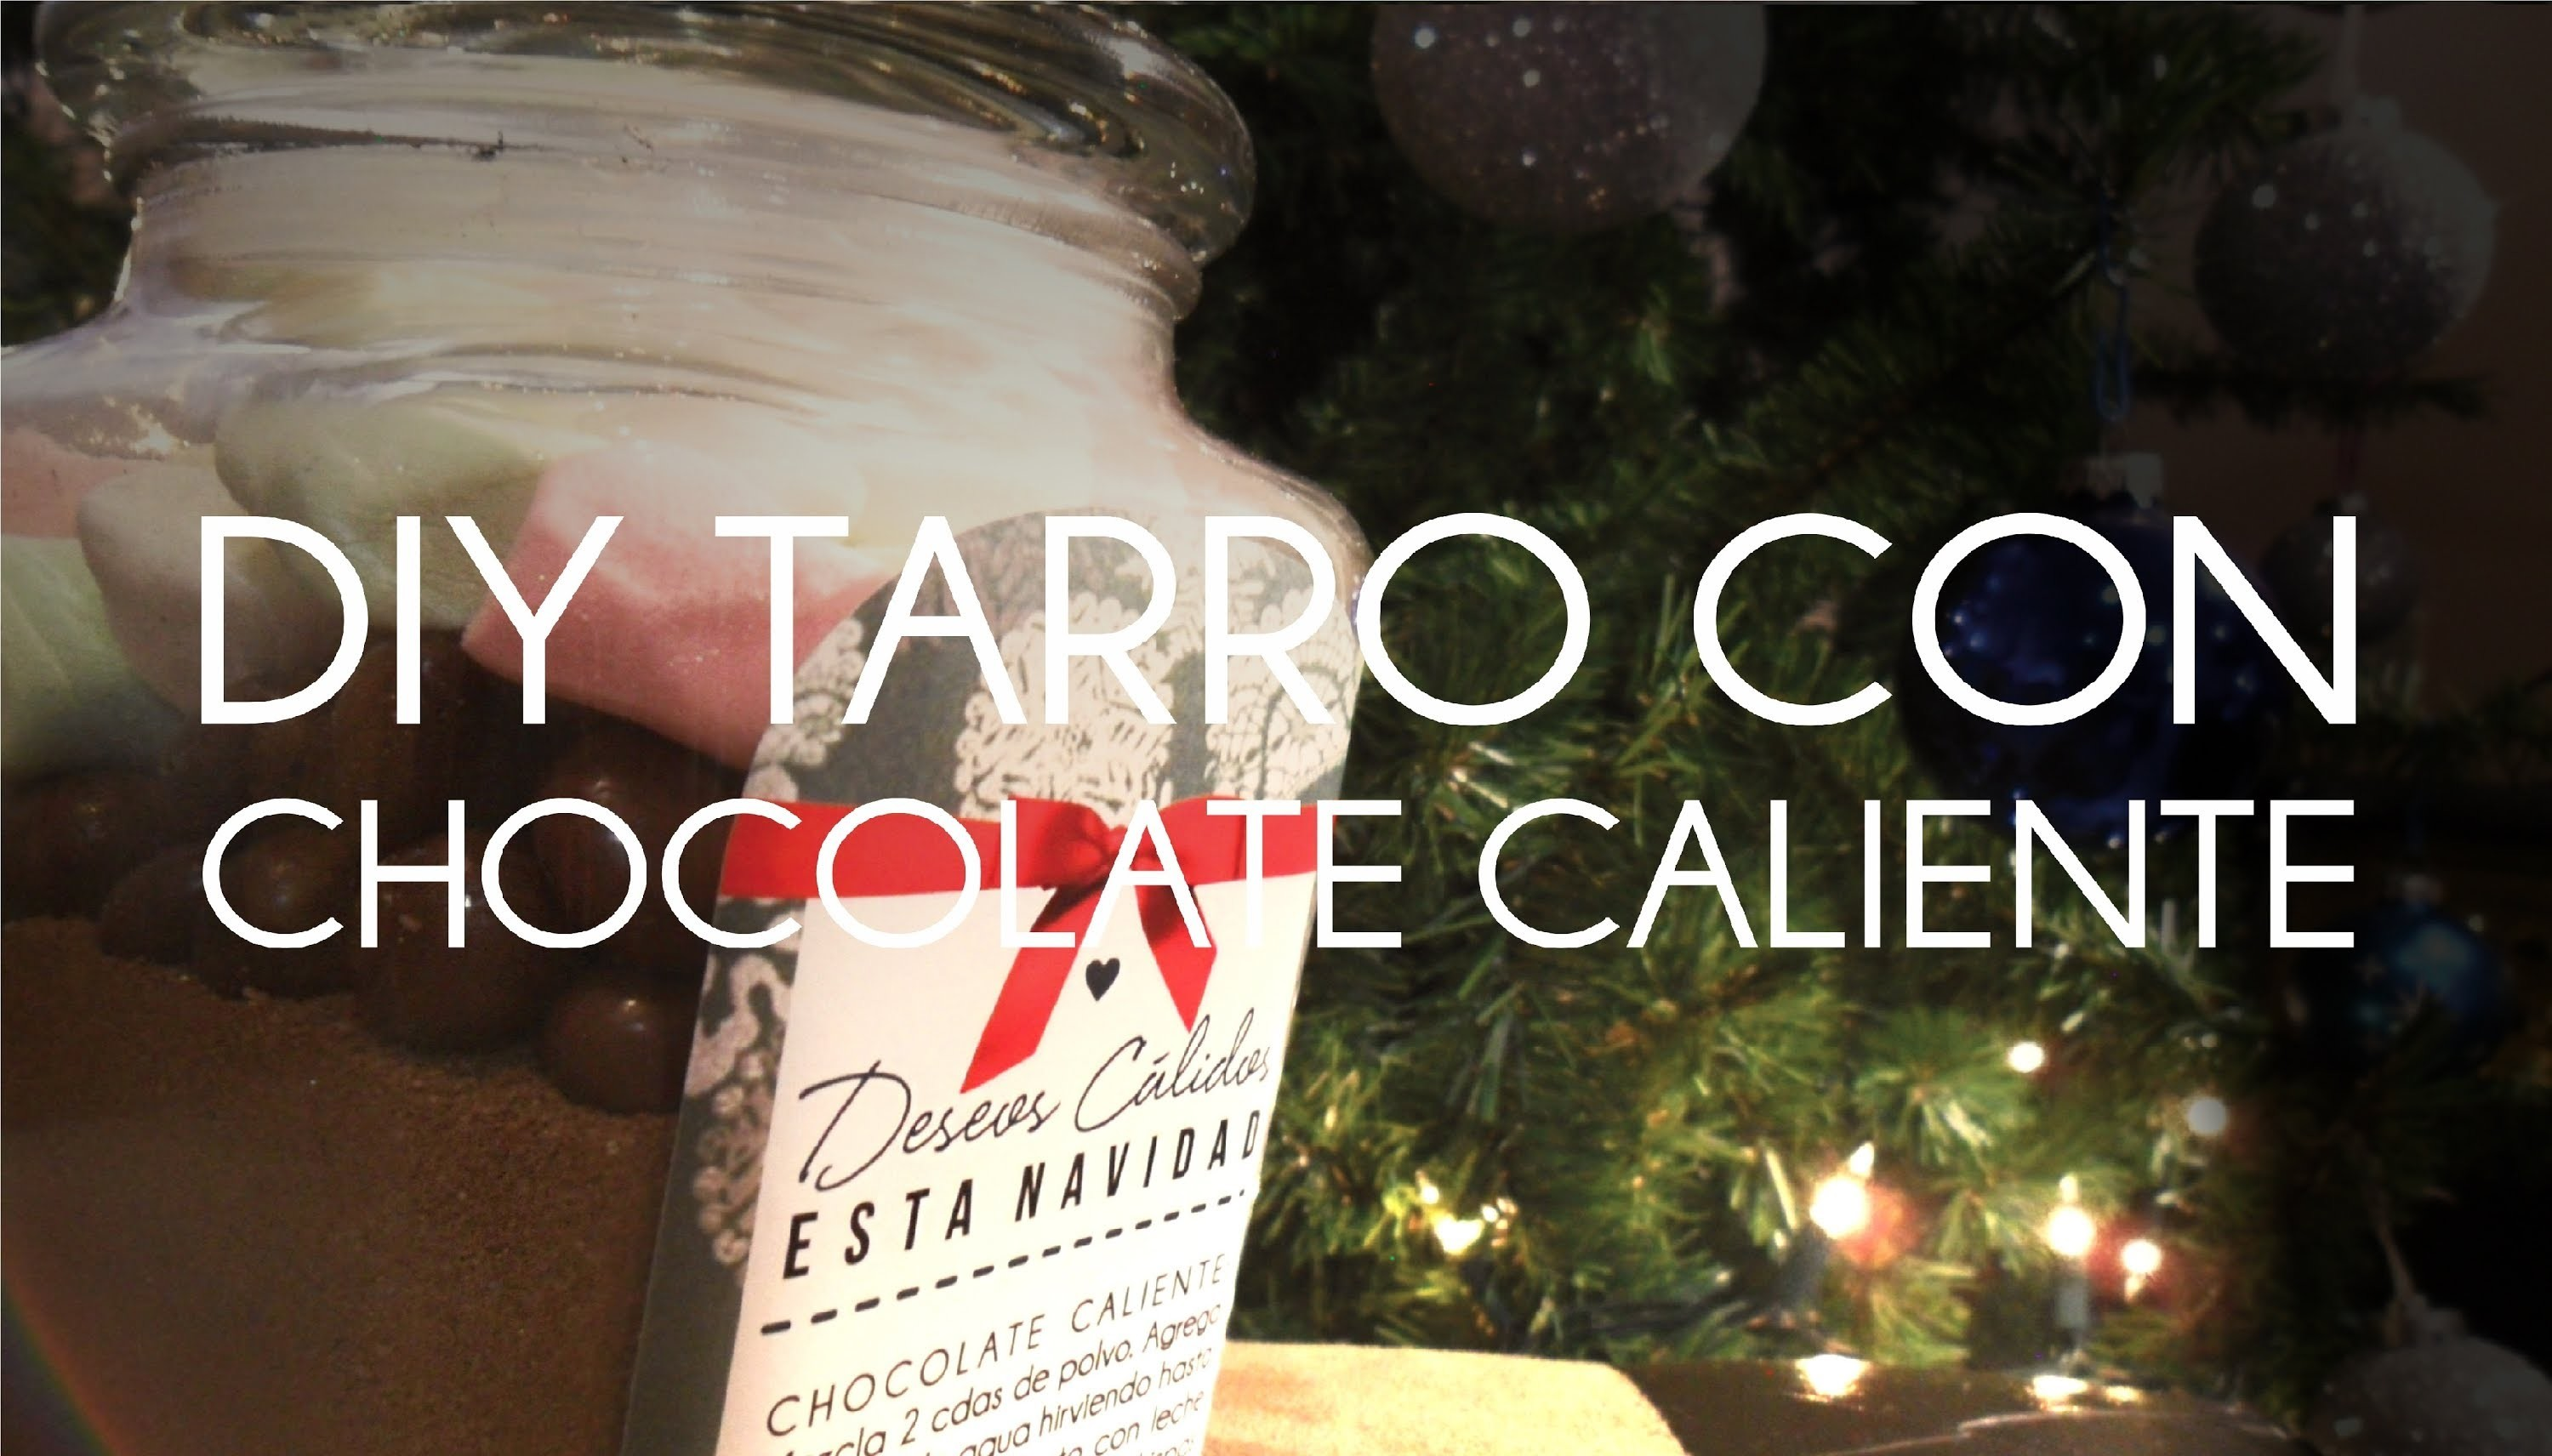 DIY TARRO CON CHOCOLATE CALIENTE.